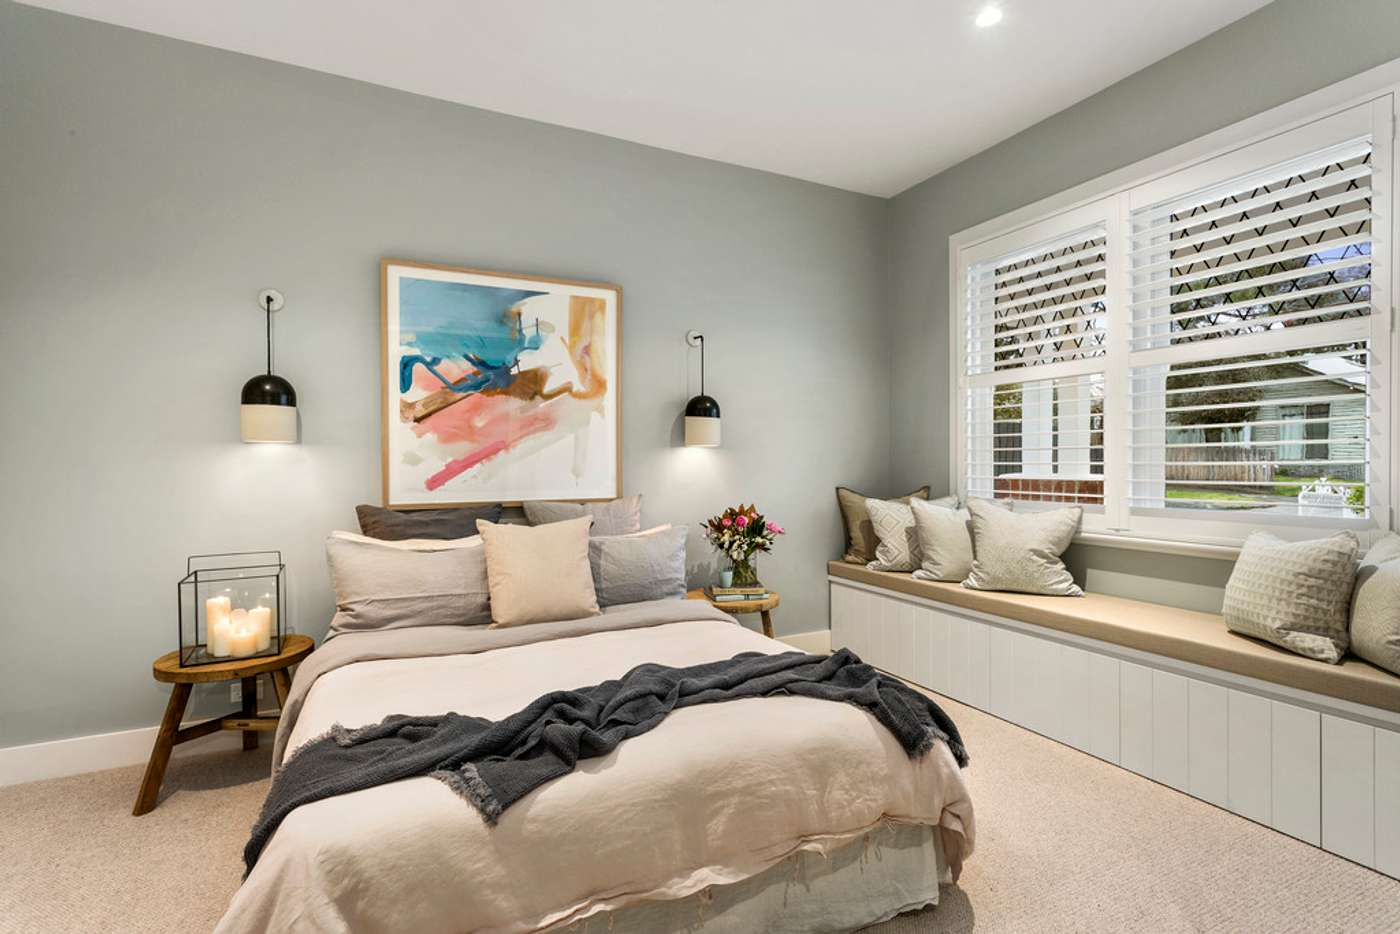 Sixth view of Homely house listing, 14 Irymple Avenue, Kew East VIC 3102